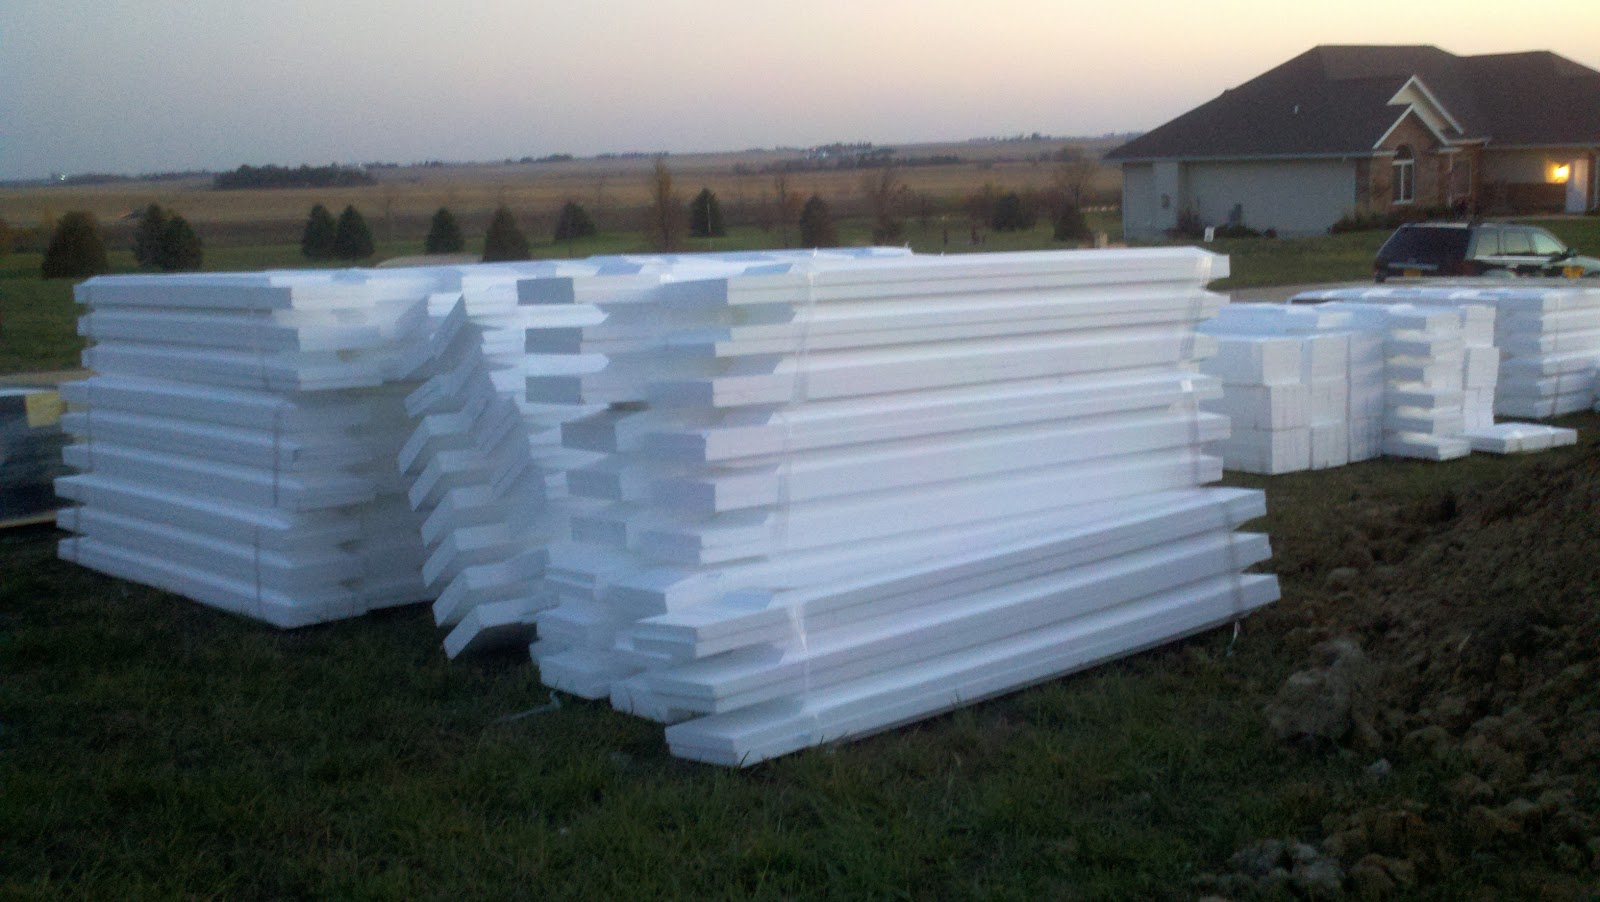 New Lizer Homestead Foam Delivered Lots And Lots Of Foam